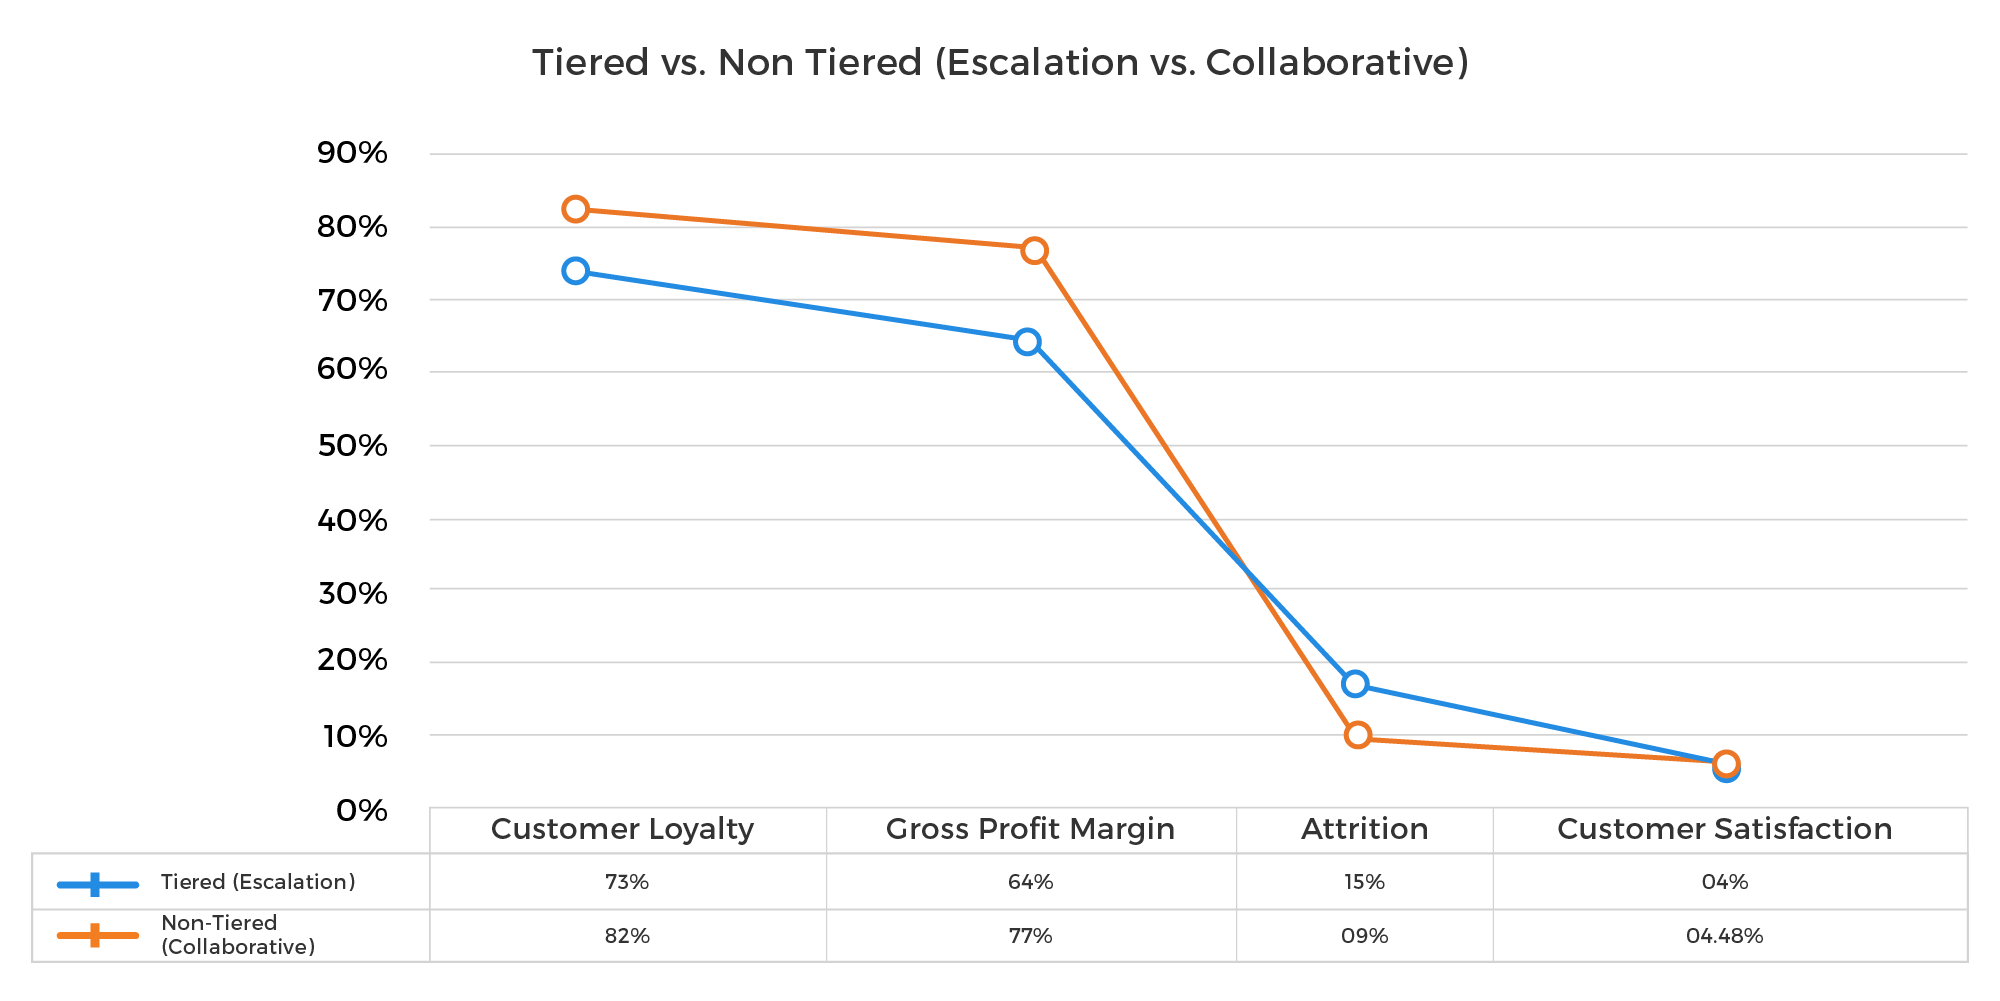 the performance numbers for the collaborative support model are better in each case